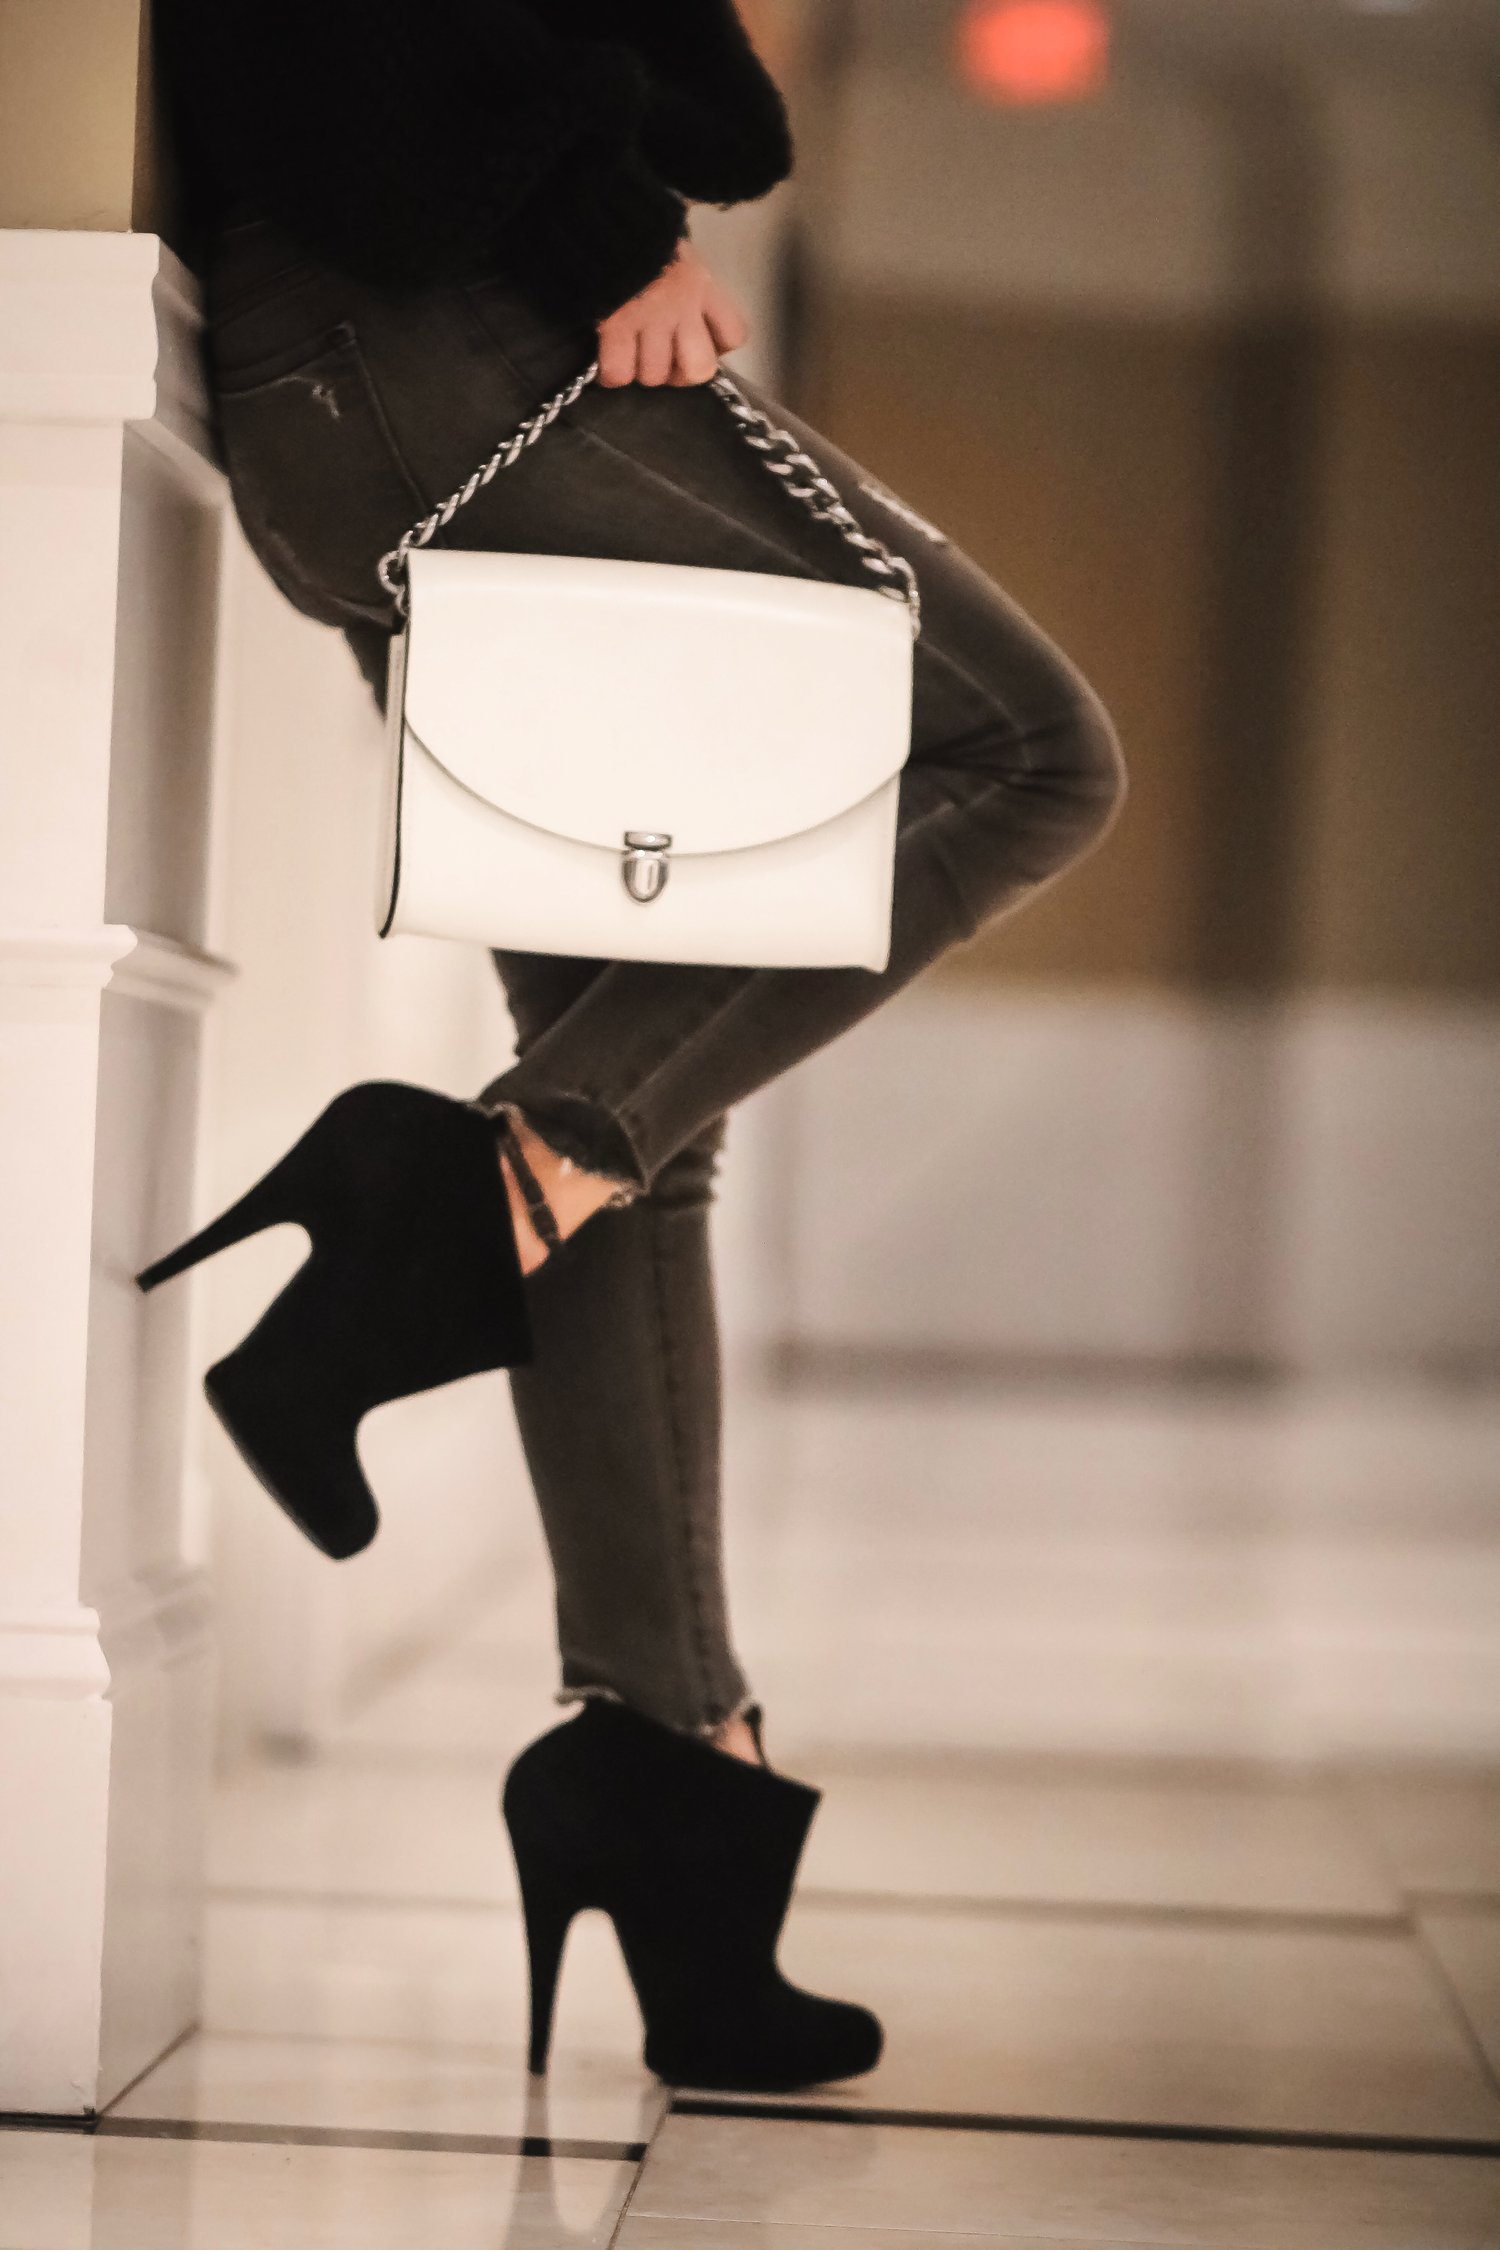 Isabel-alexander-luxury-shoes-details